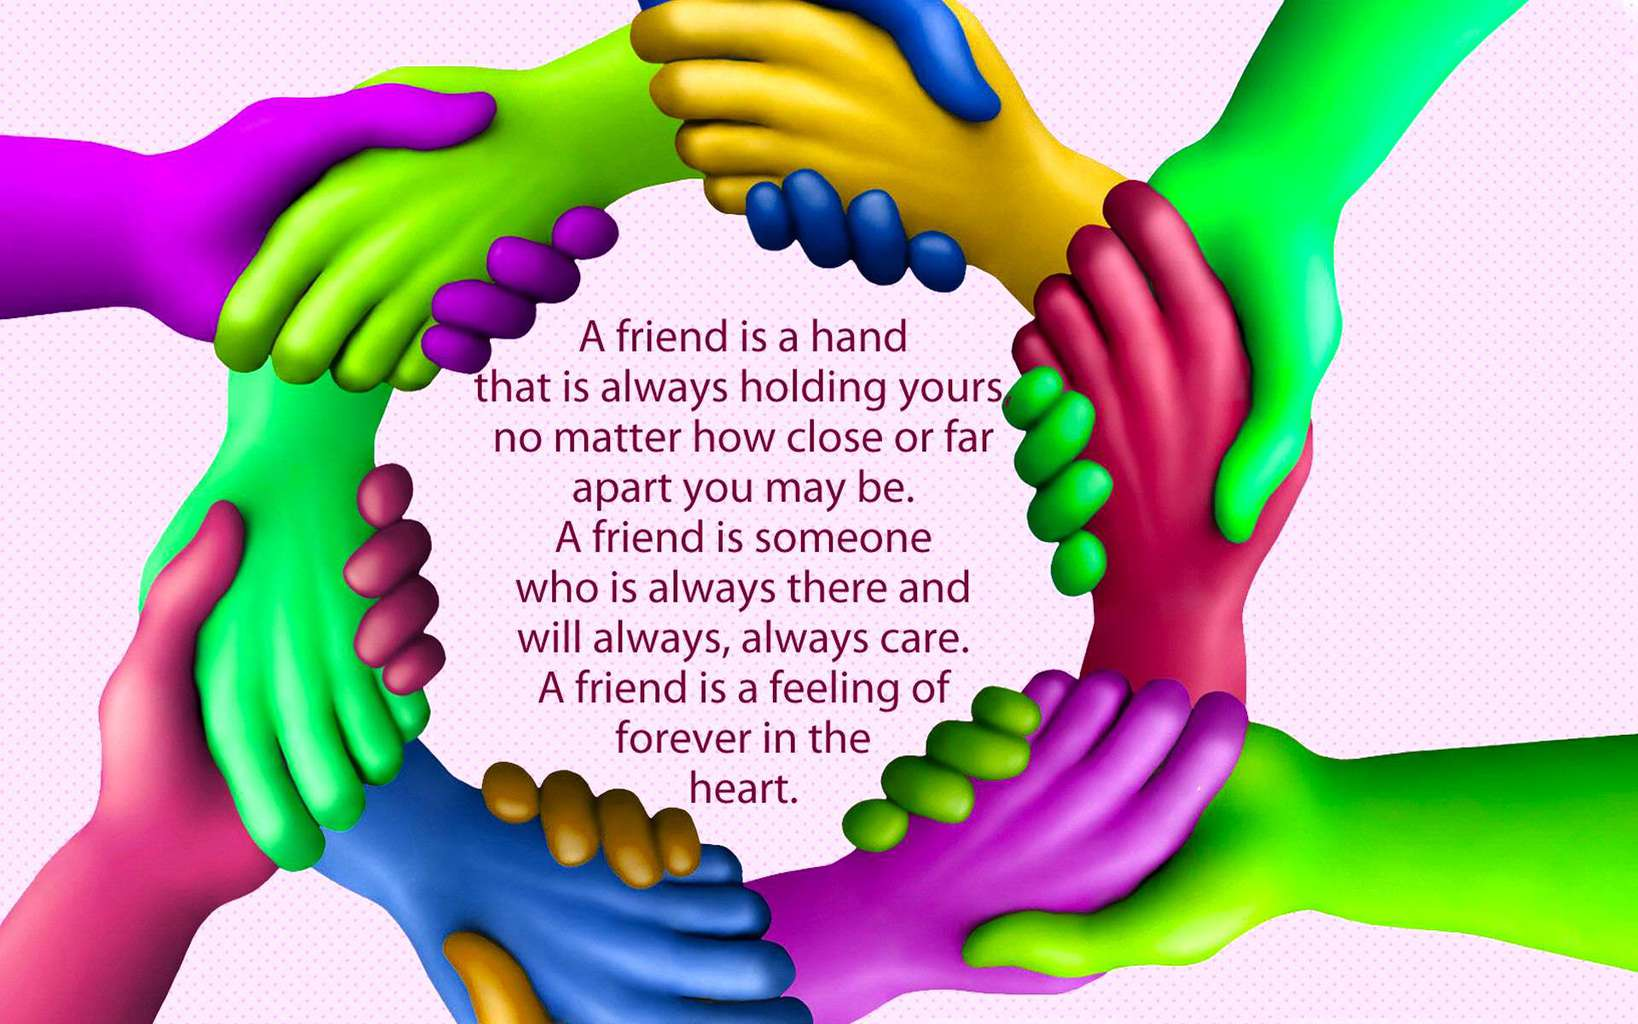 Friendship-awesome-wallpaper